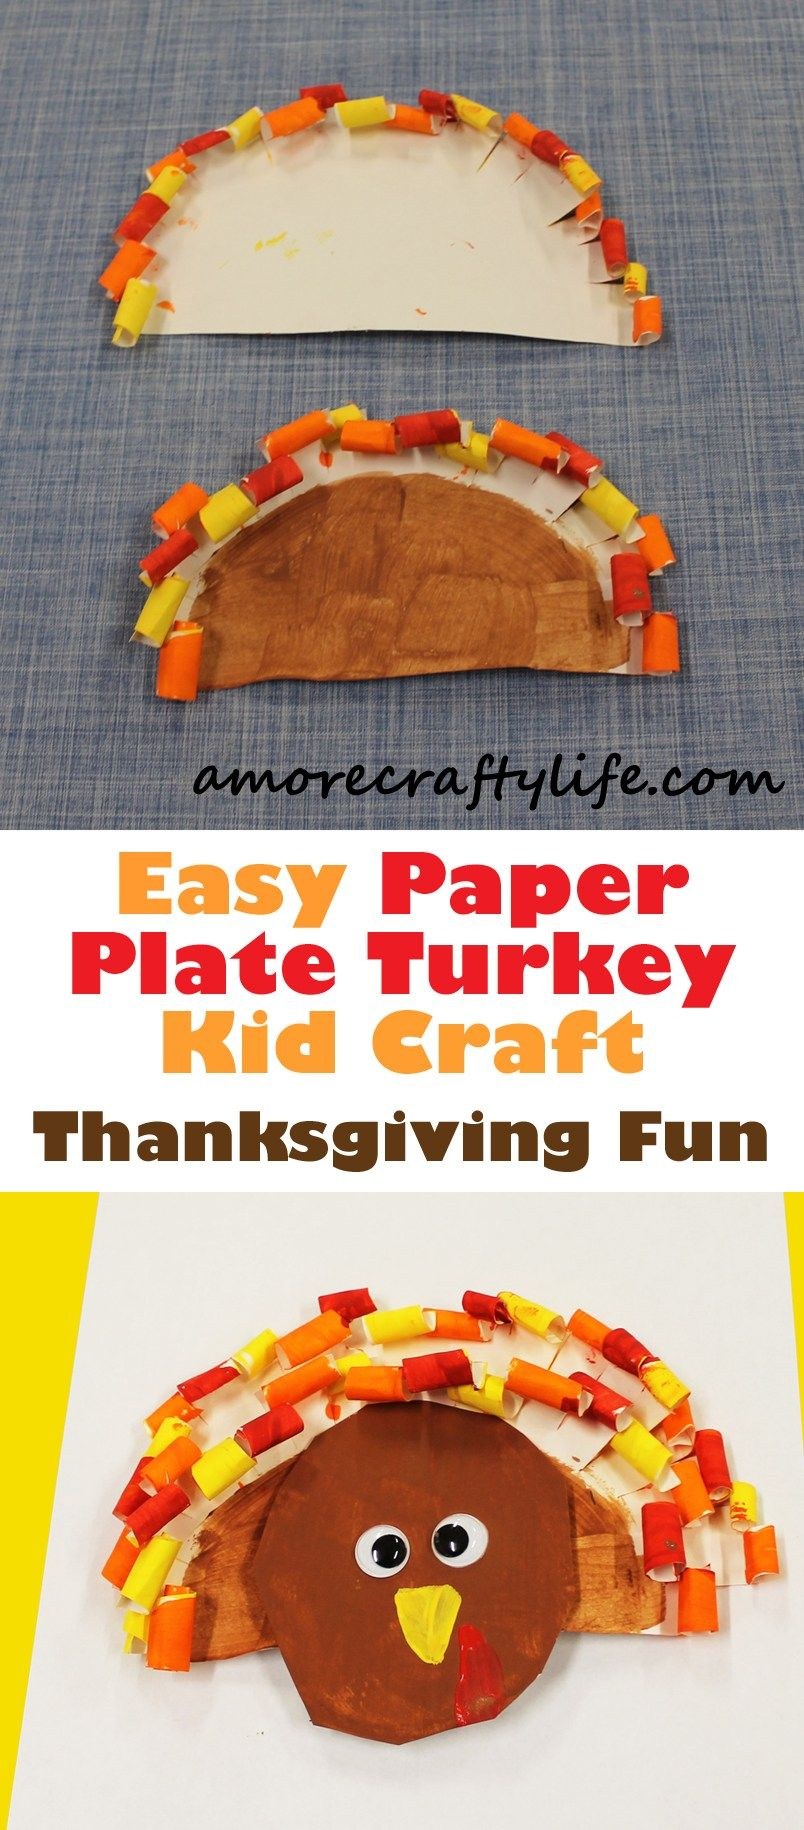 Fun Kids Crafts with Candy! Candy Cane Reindeer + Turkey